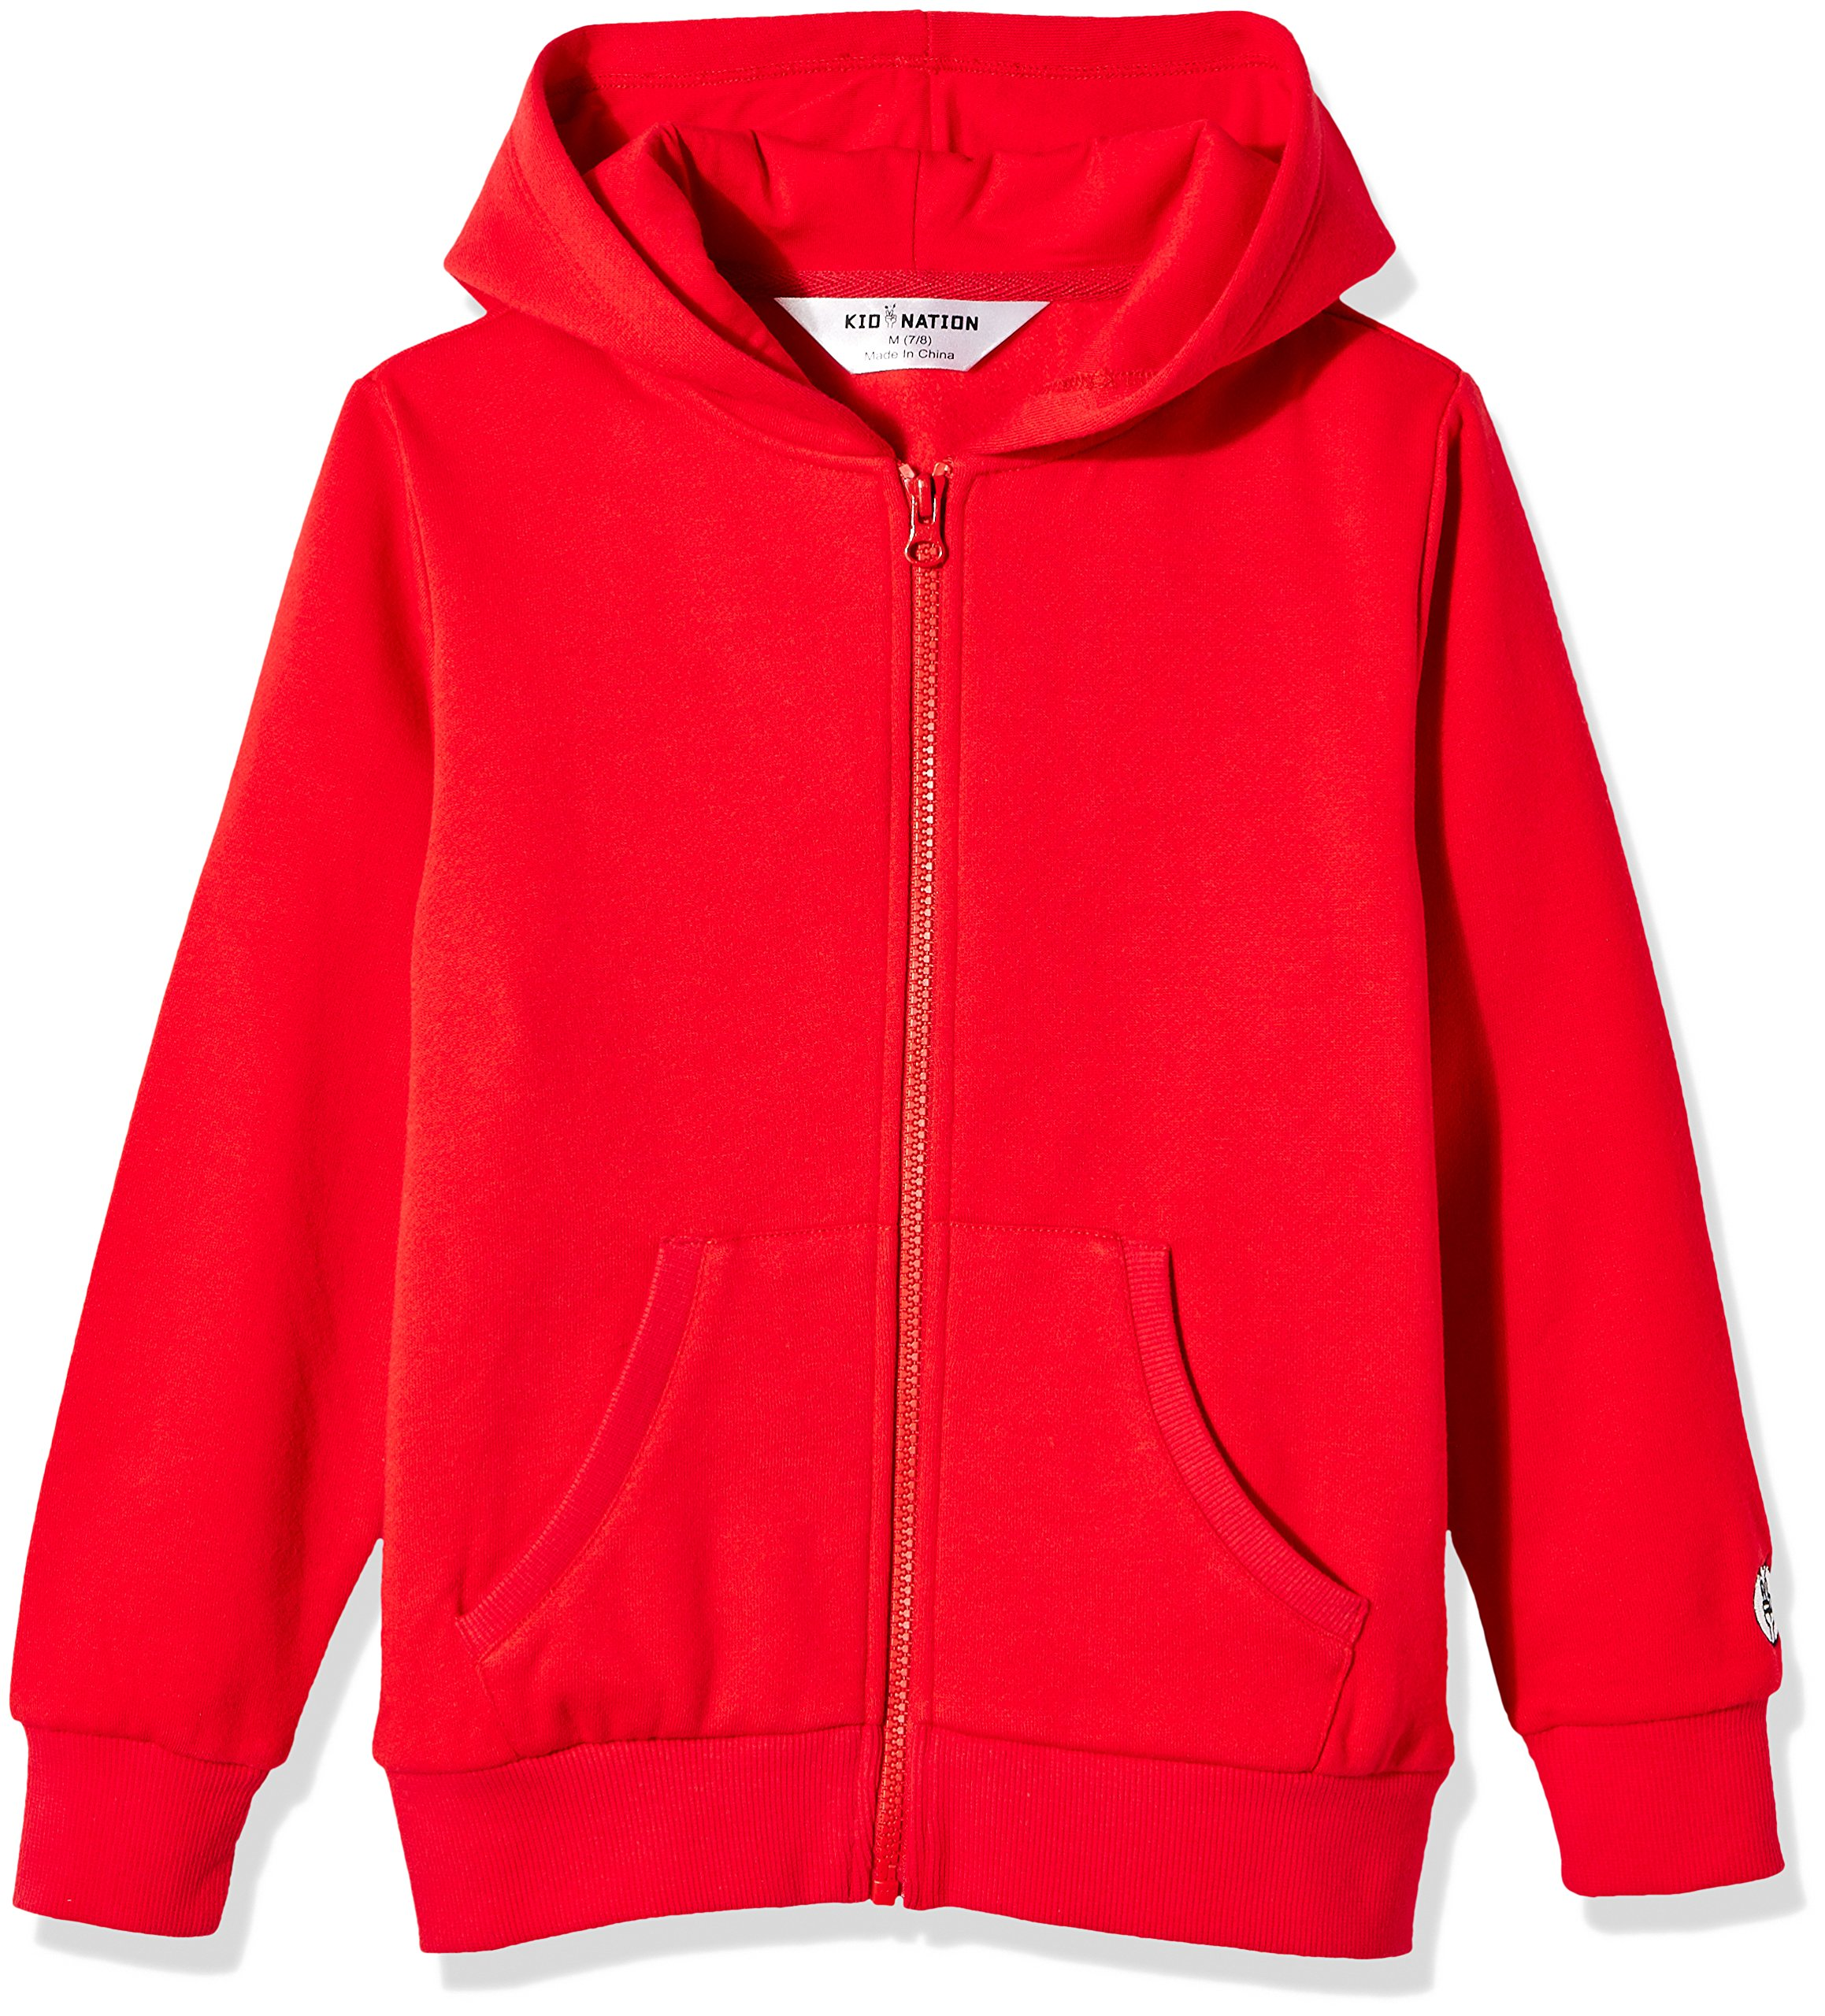 Kid Nation Kids' Brushed Fleece Zip-up Hooded Sweatshirt for Boys Girls S Tomato Red